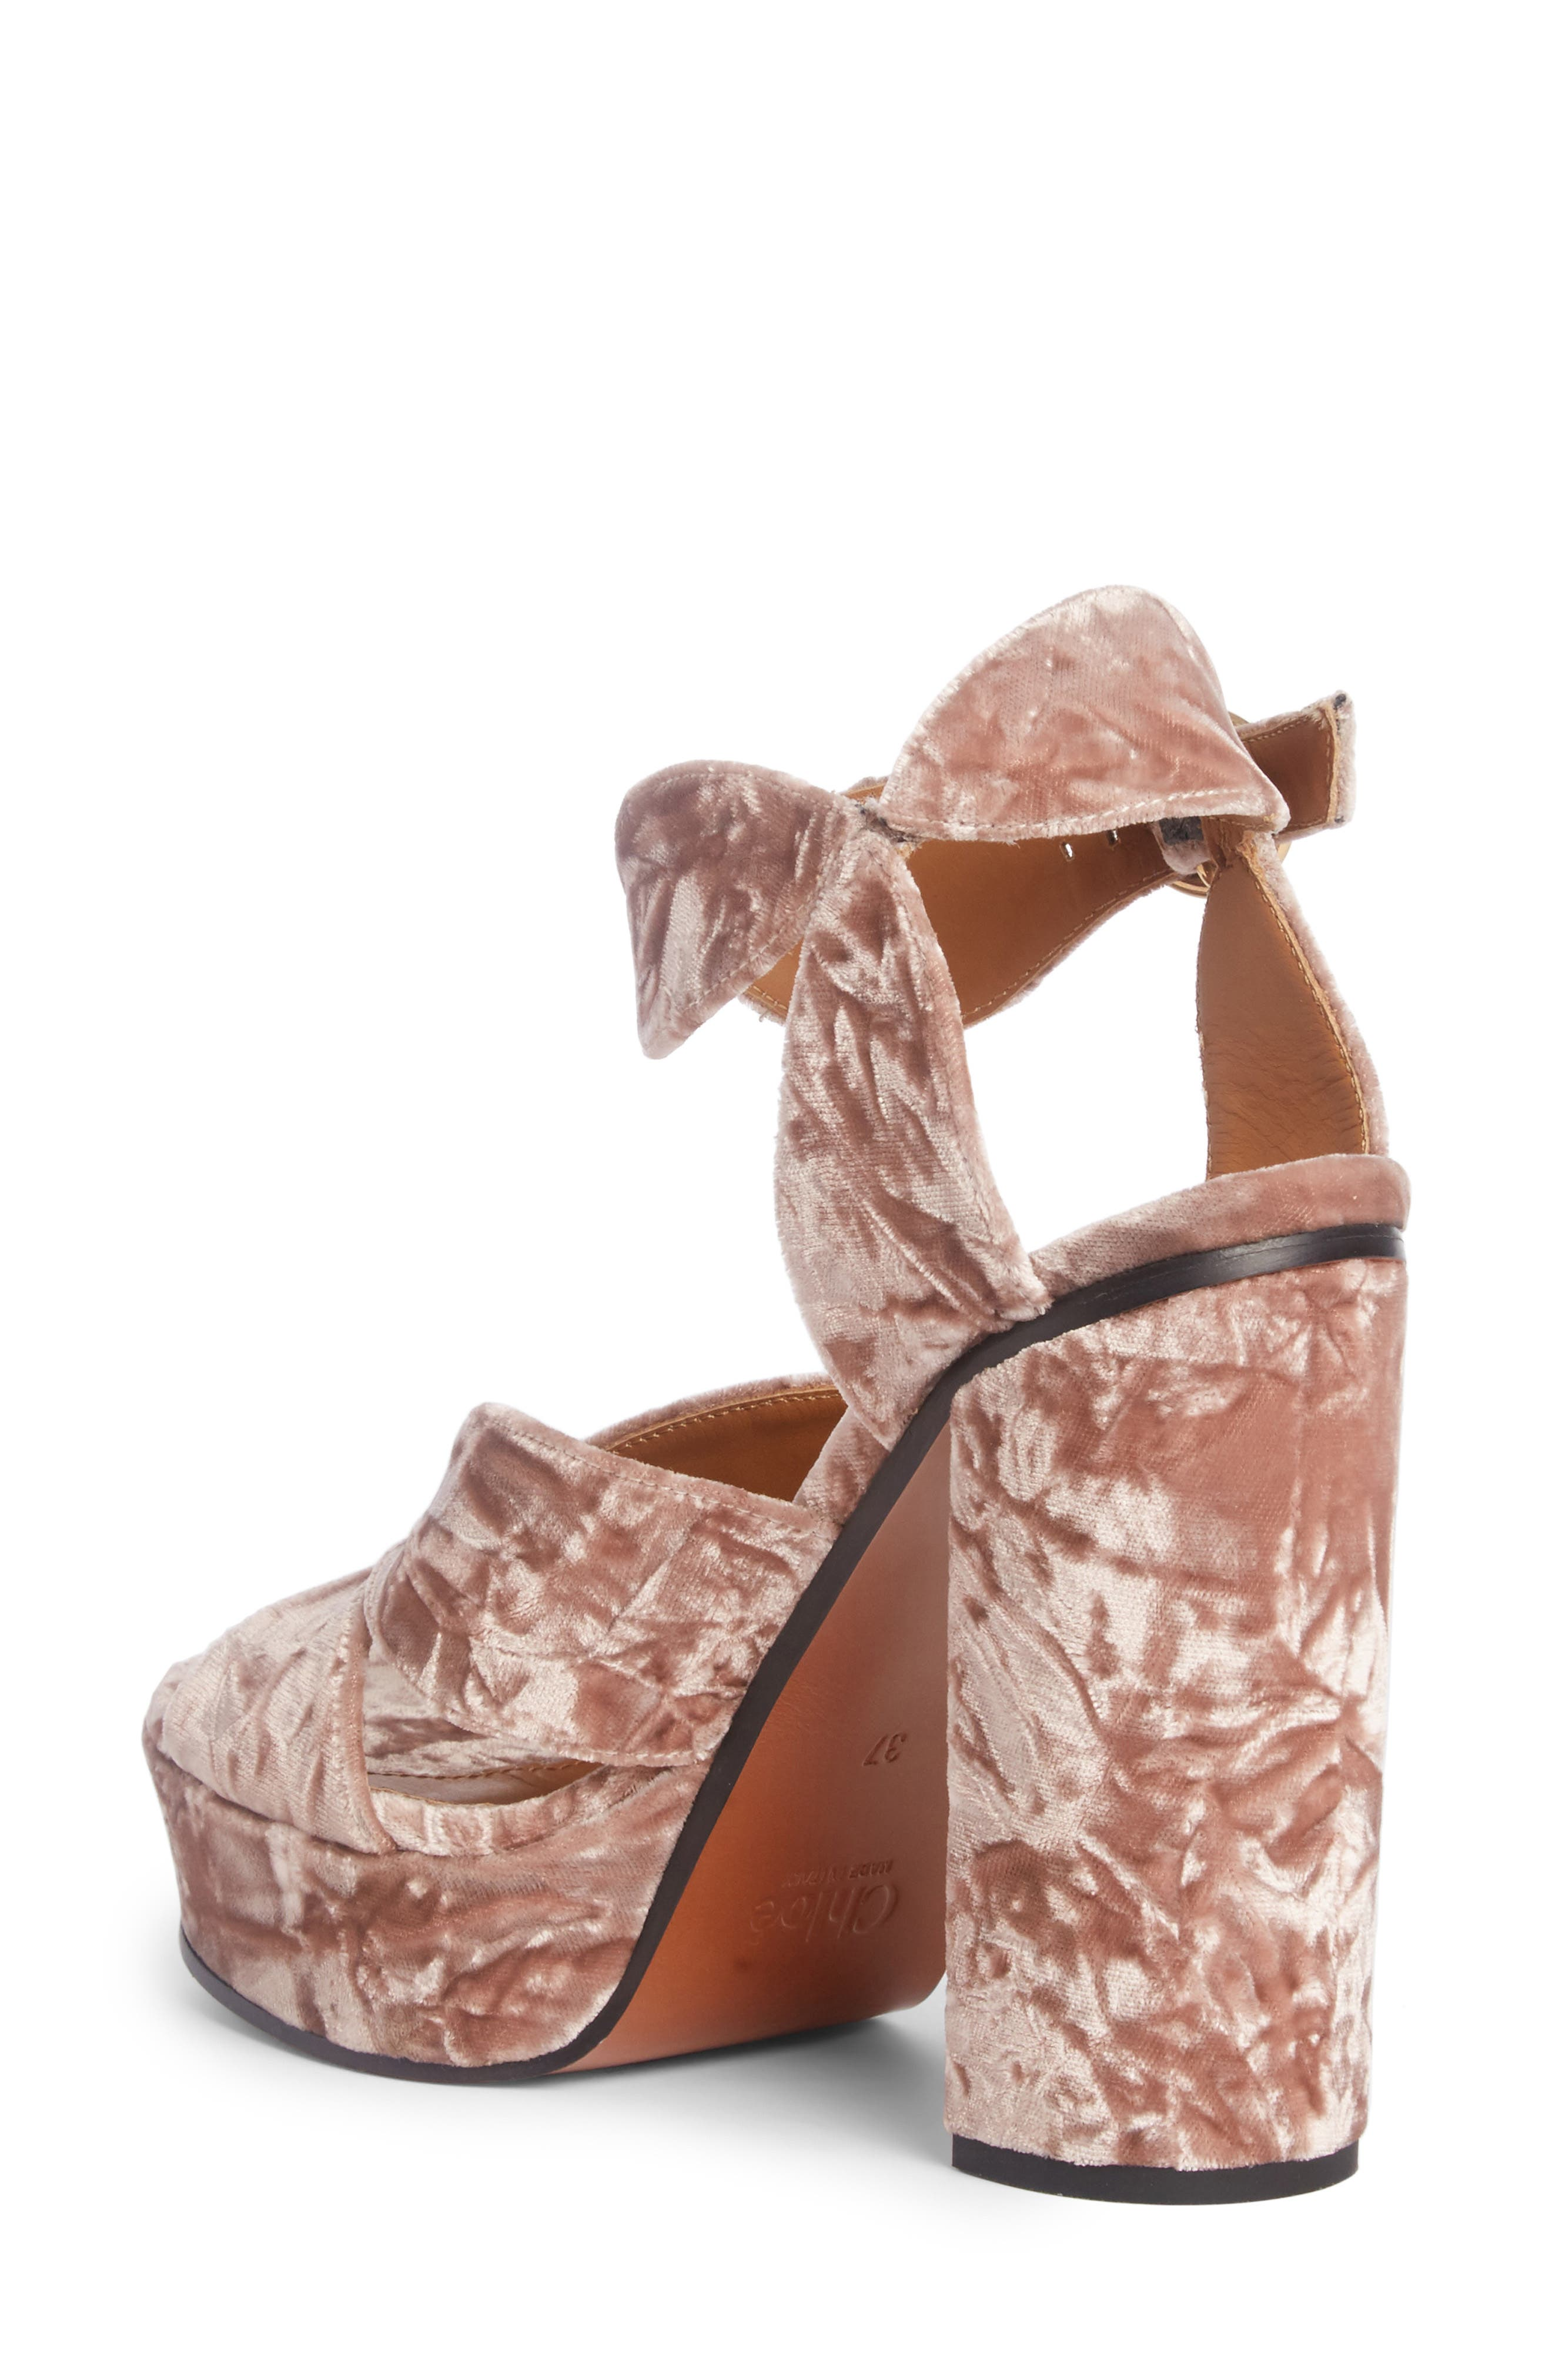 Graphic Leaves Platform Sandal,                             Alternate thumbnail 2, color,                             280